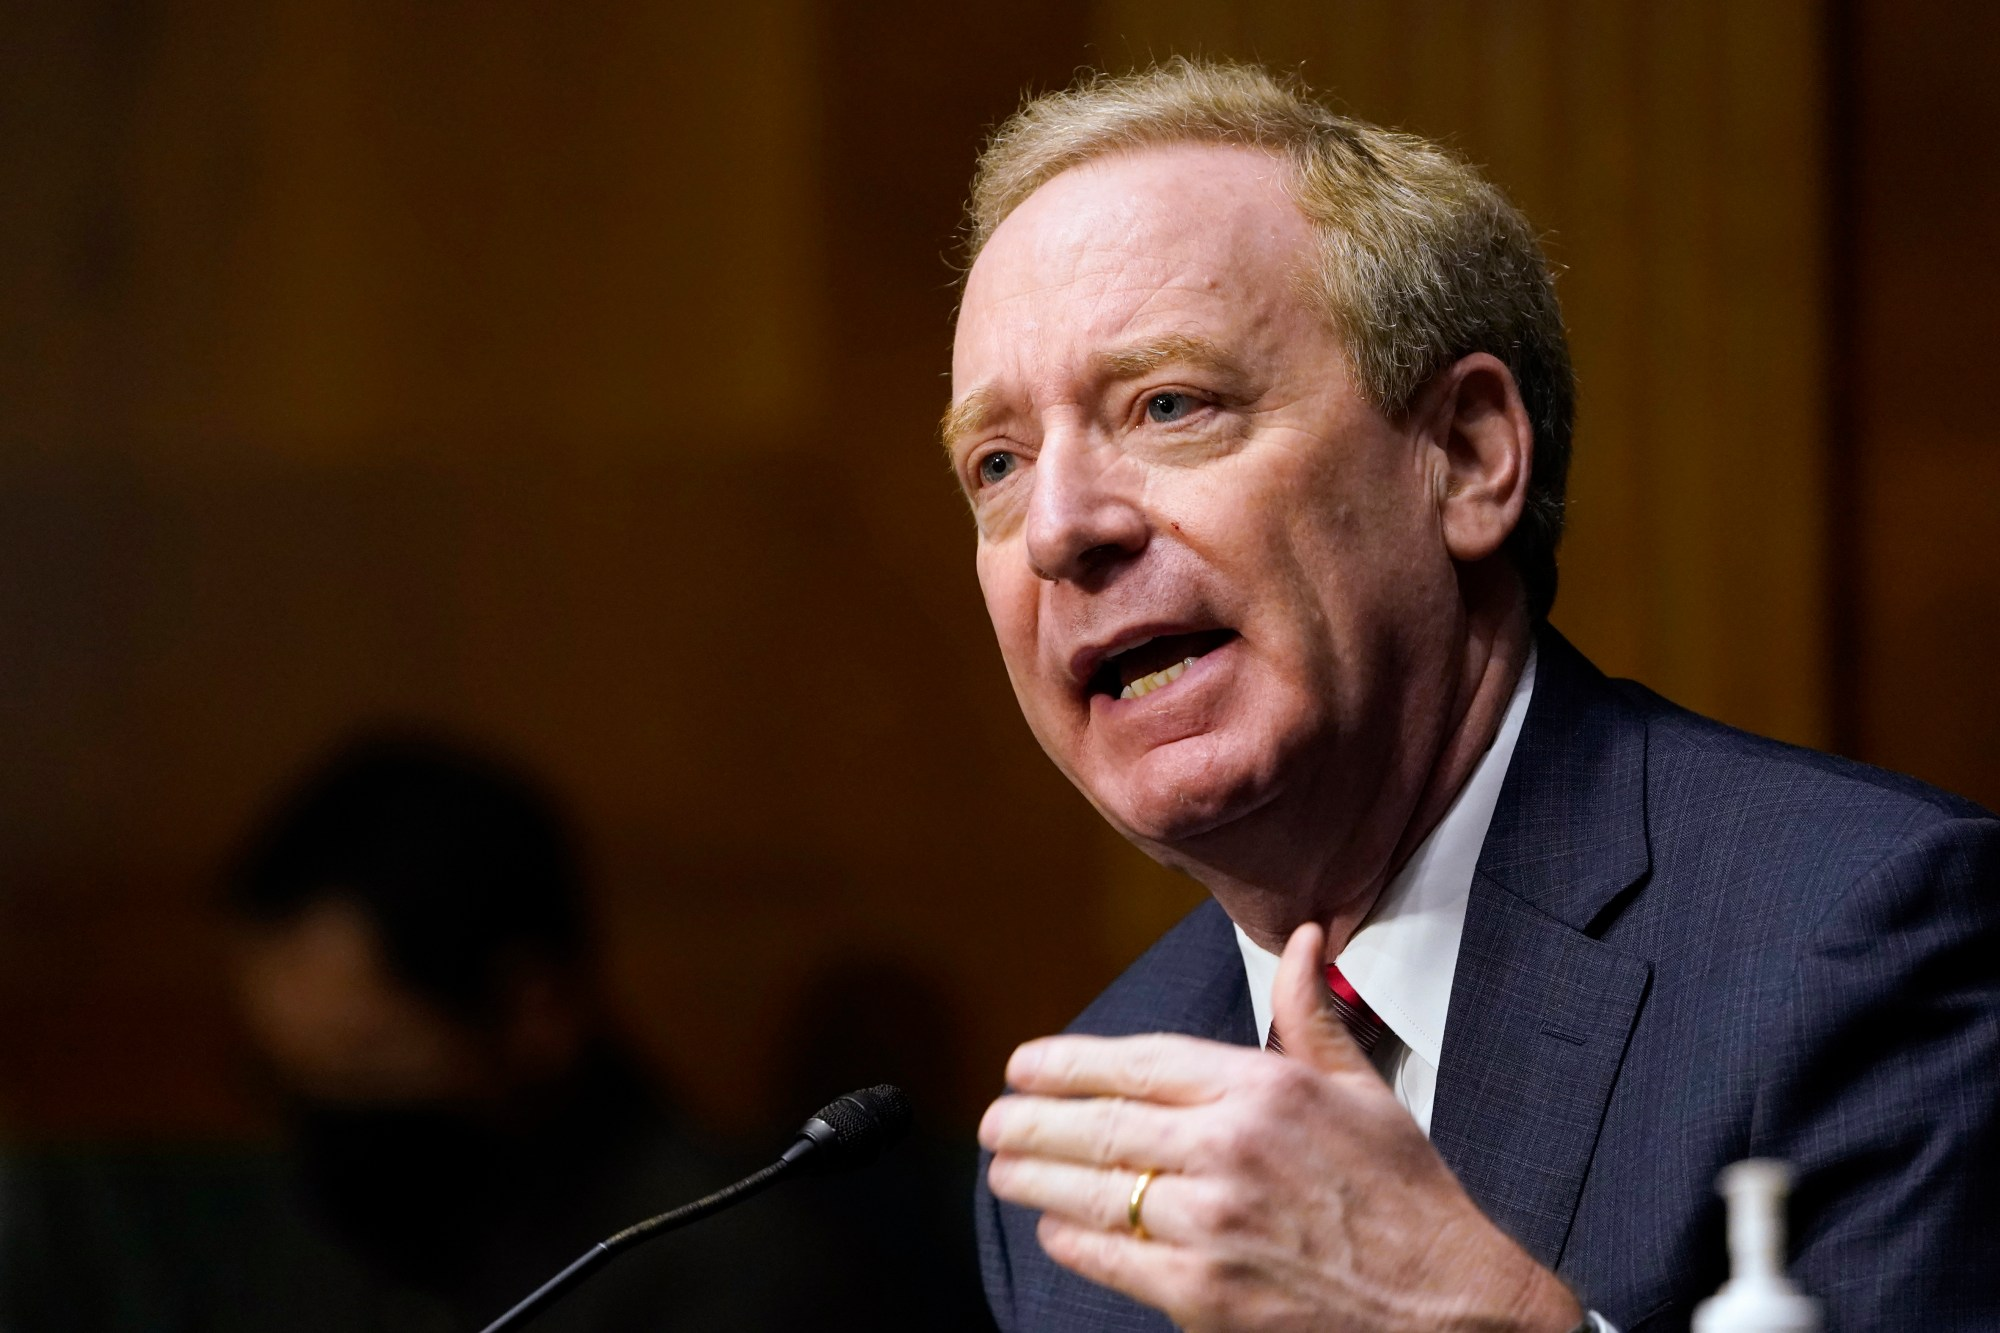 In this Feb. 23, 2021, file photo Brad Smith, president of Microsoft Corporation, speaks on Capitol Hill in Washington during a hearing on emerging technologies and their impact on national security. (AP Photo/Susan Walsh, File)